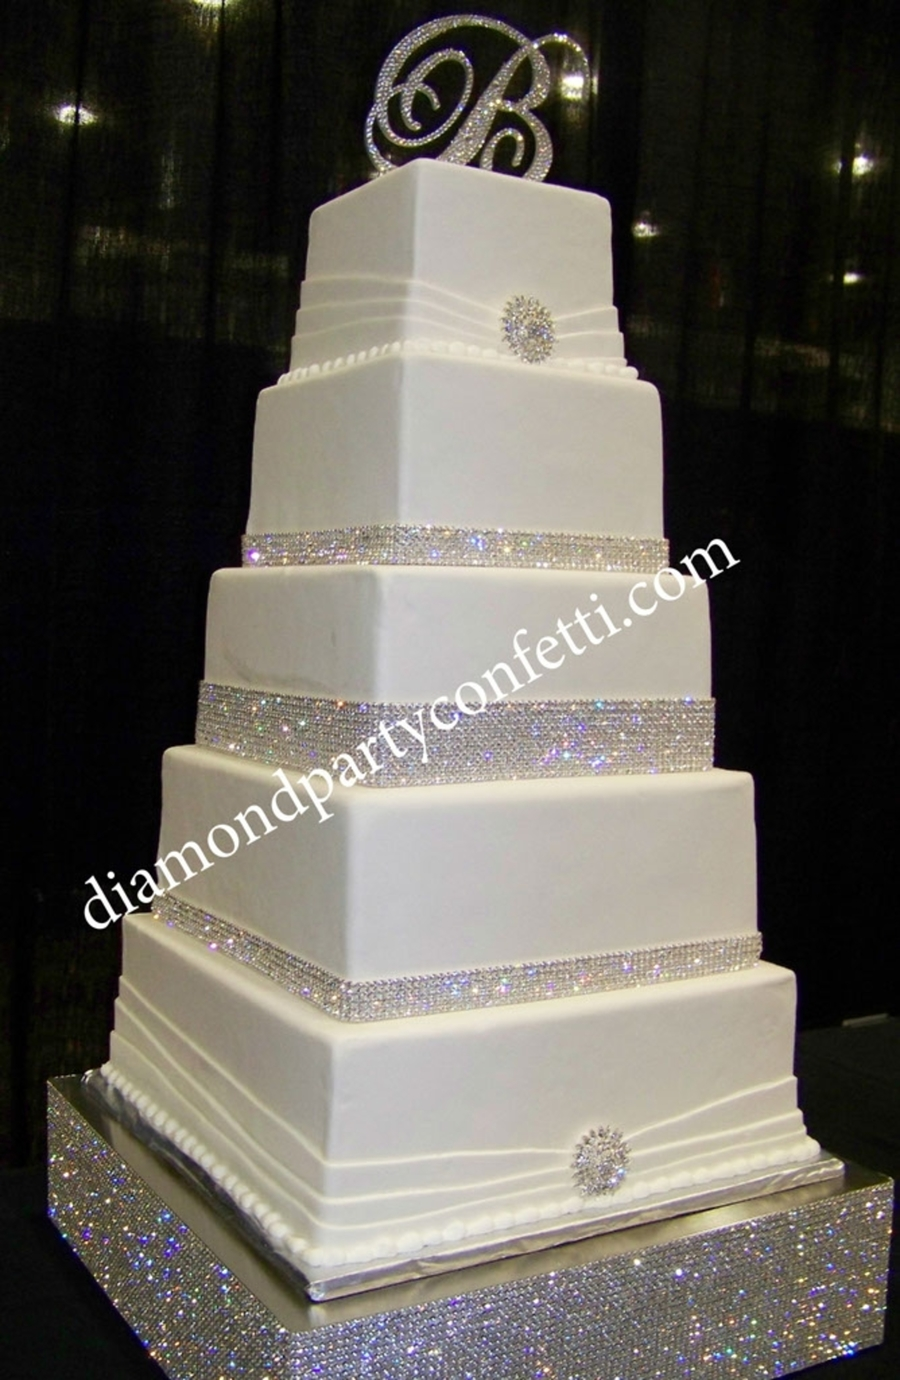 Sparkly Bling Nails: Rhinestone Bling Wedding Cake